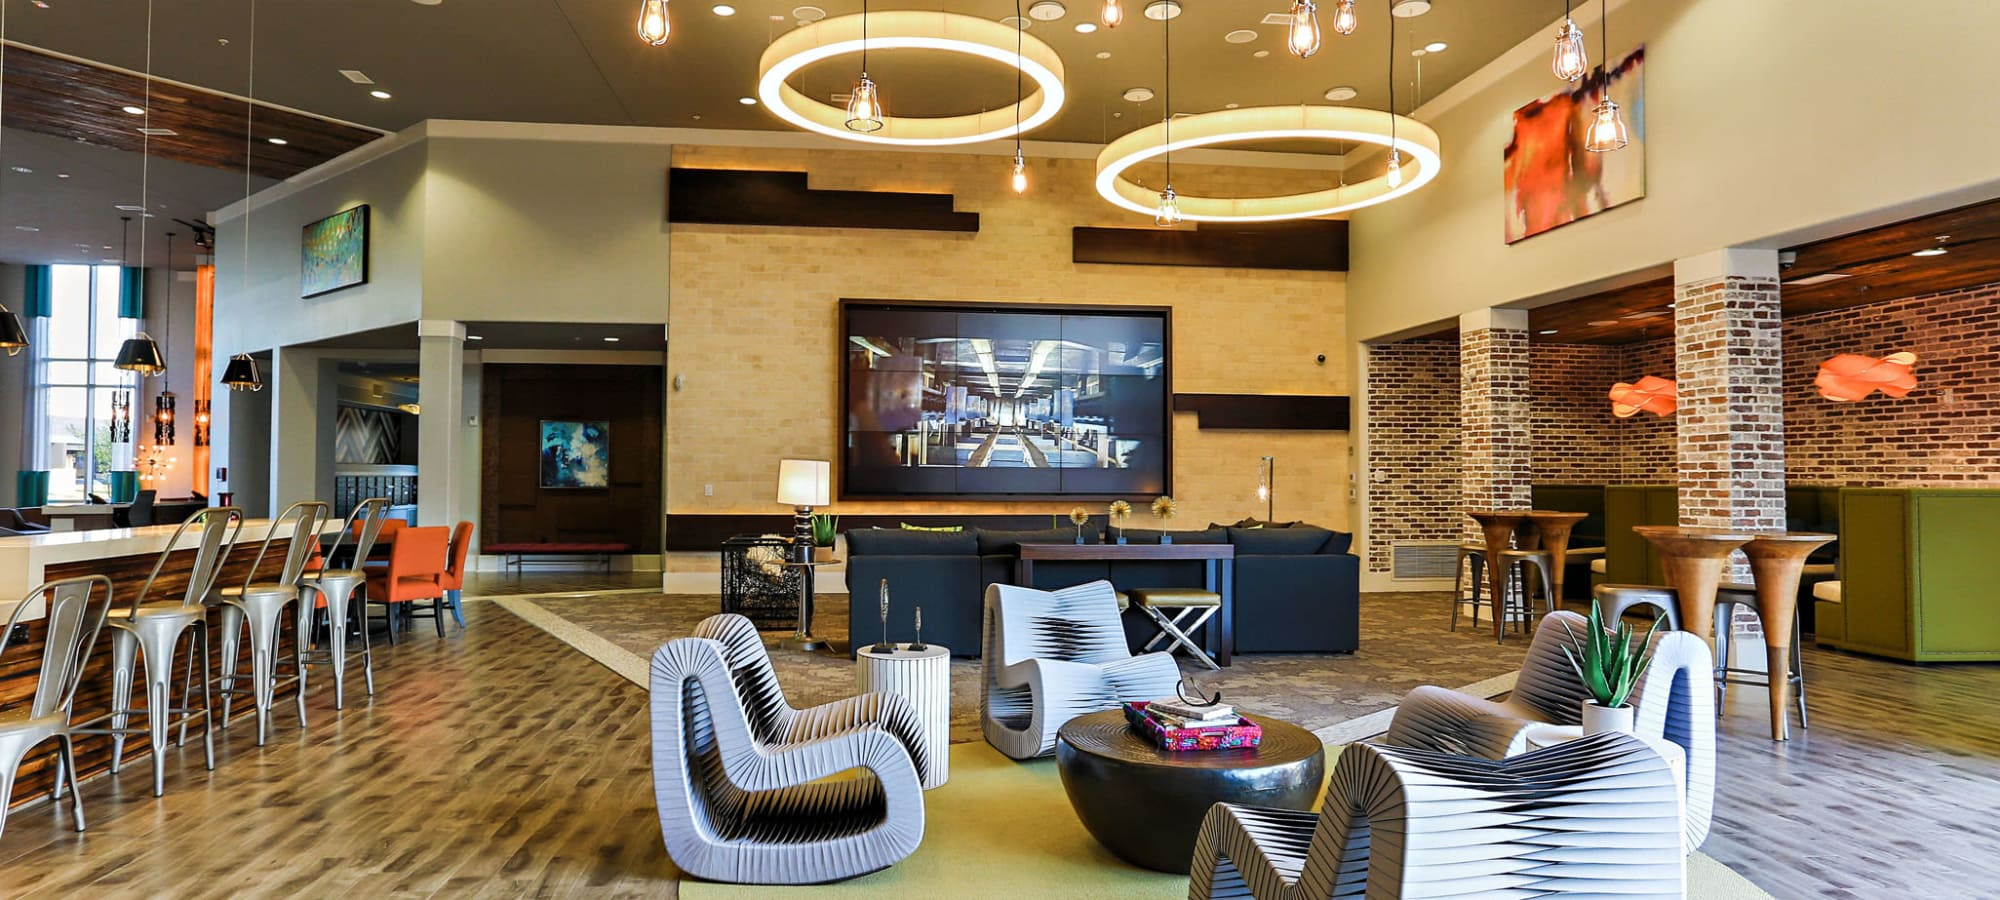 Comfortable seating in front of the large flatscreen TVs in the clubhouse at The Hyve in Tempe, Arizona